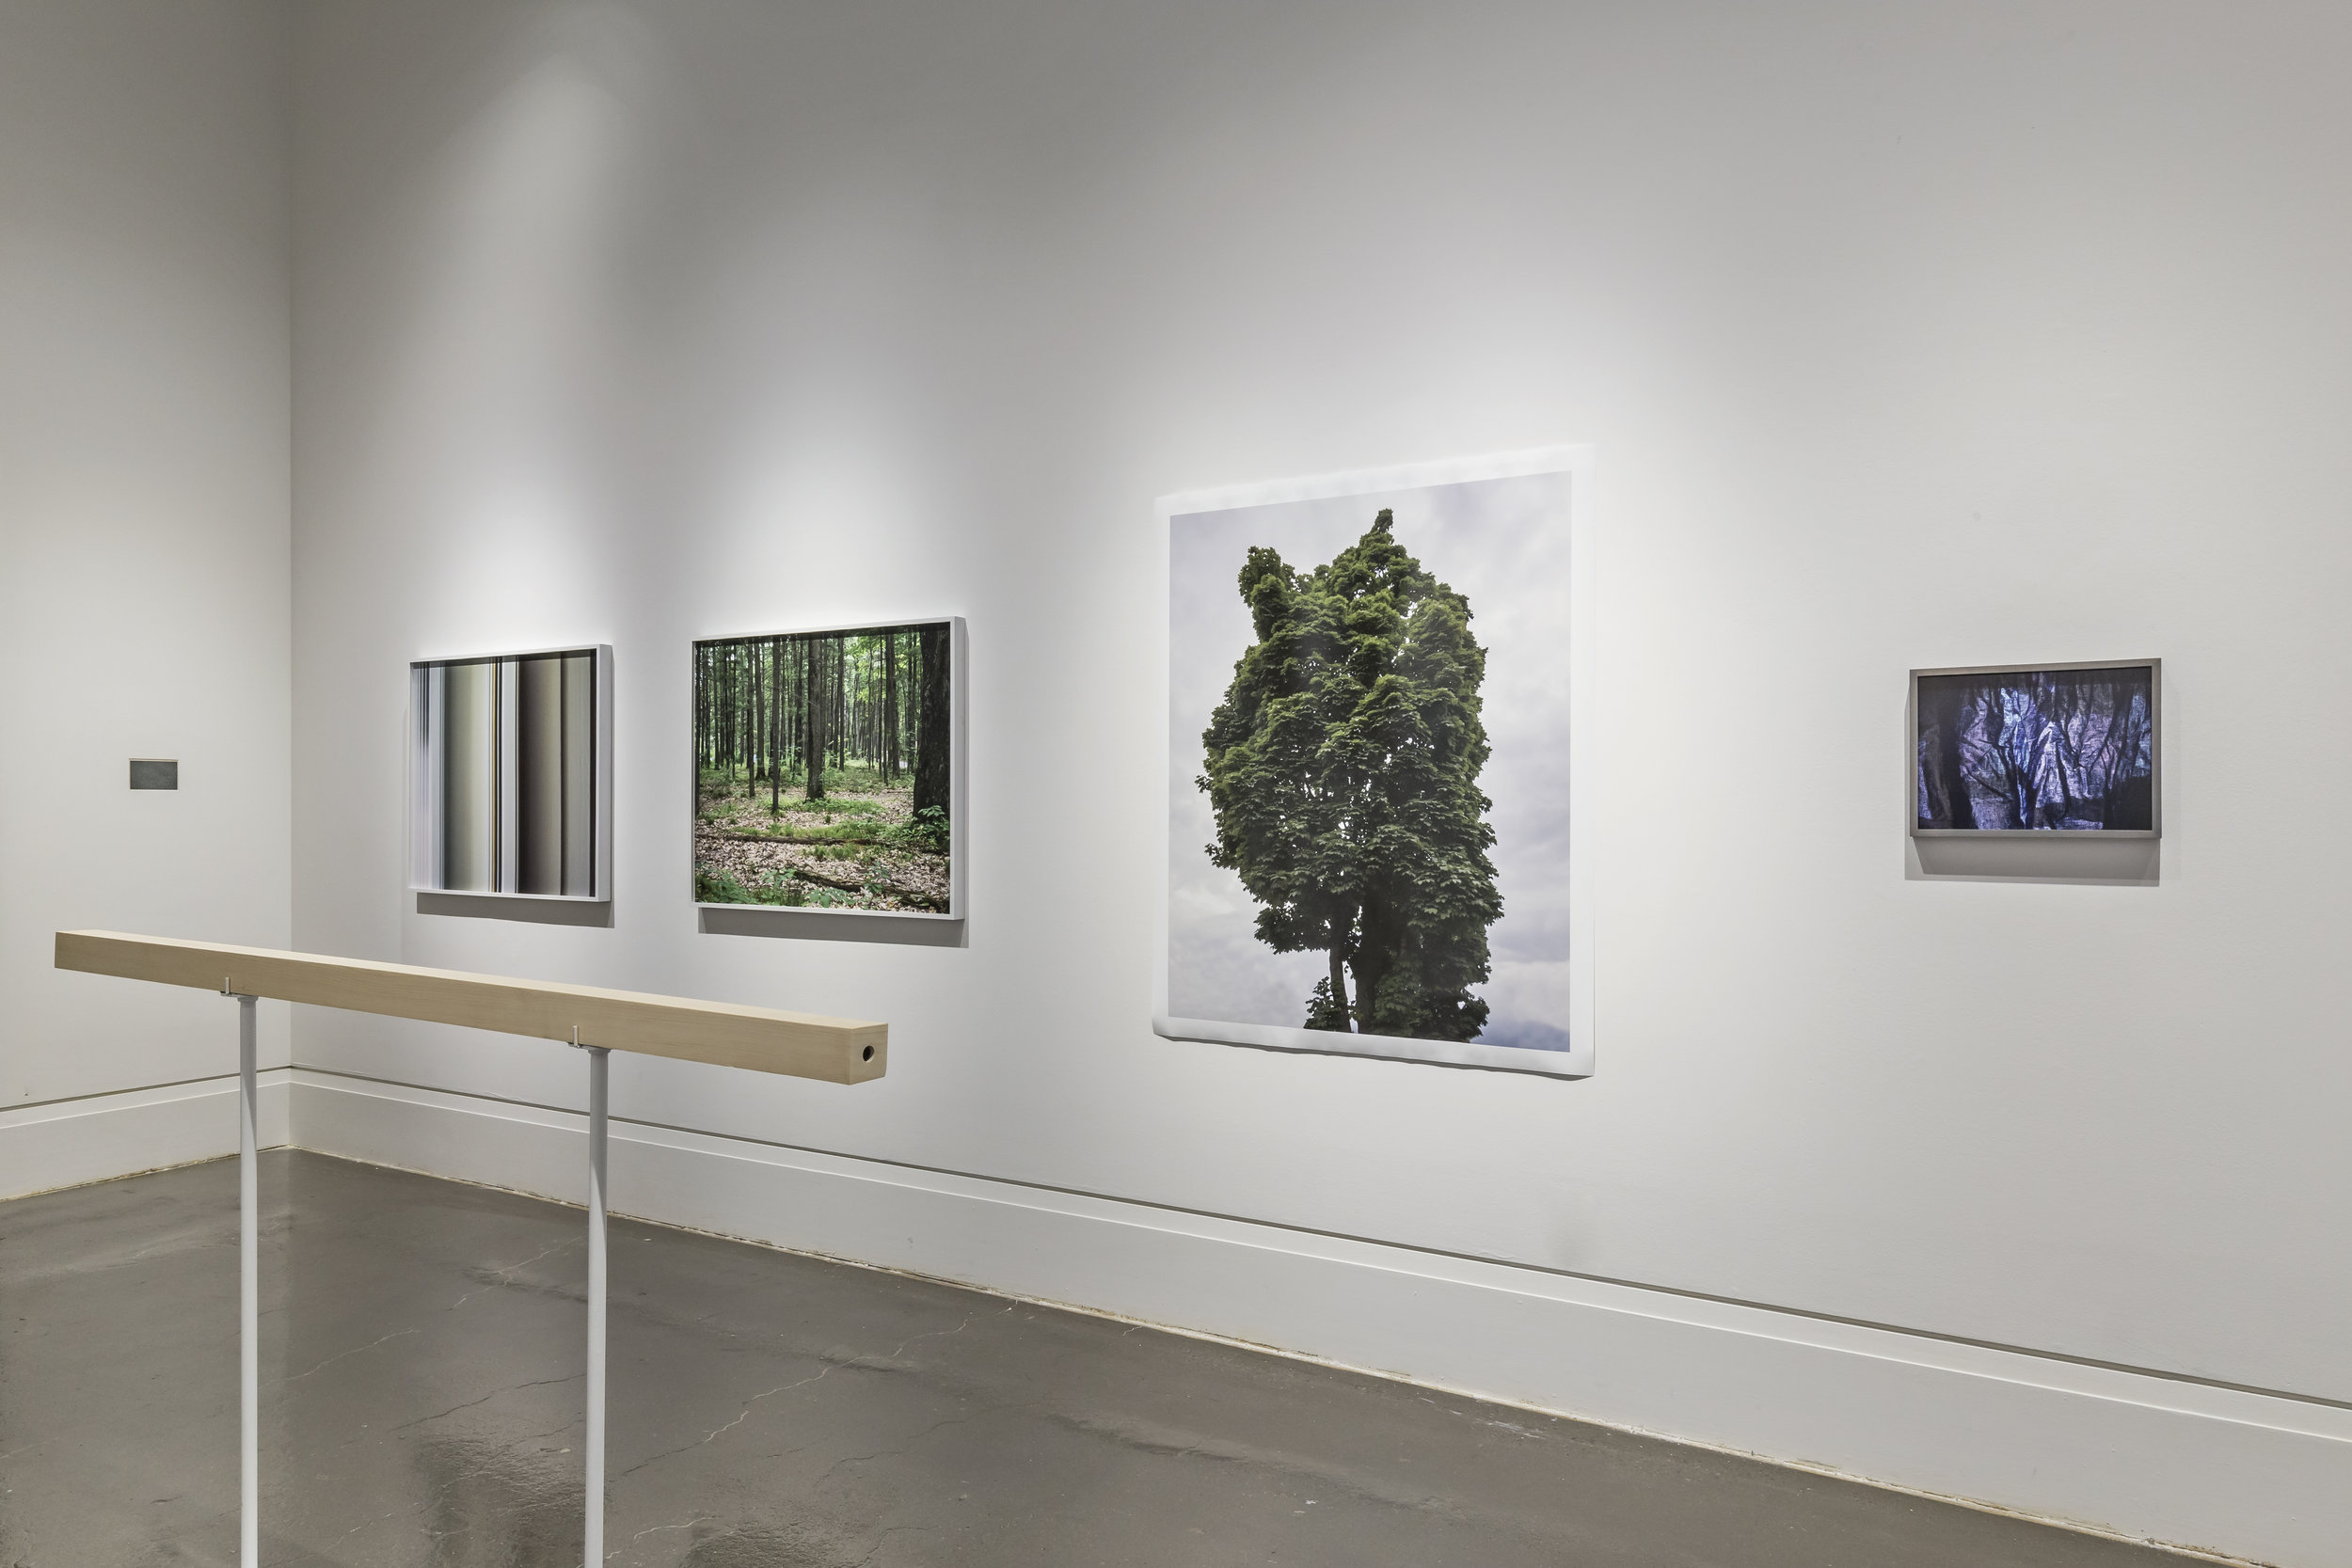 Chih-Chien Wang, A Person Who Disappears , Robert Freeman Gallery, Art Gallery of Mississauga. Photo by Toni Hafkenscheid.